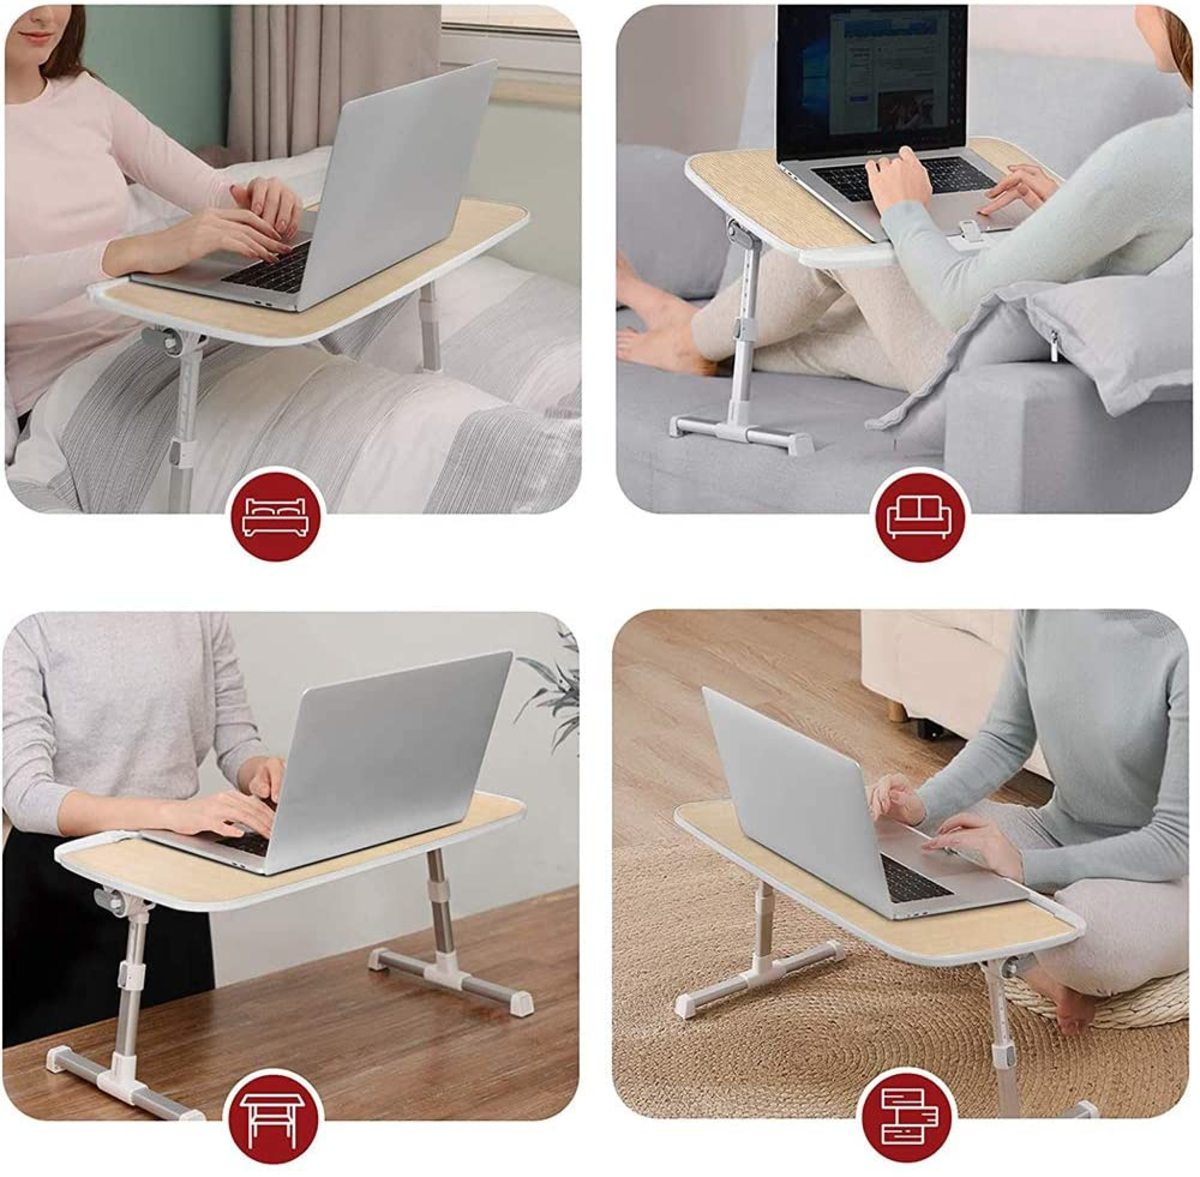 The TaoTronics Laptop Desk for Bed is a very versatile lap desk that you can adjust to suit your needs. I suffer from some back and neck issues and this product has been great for relieving the problem. Tilt and height can be adjusted to suit needs.